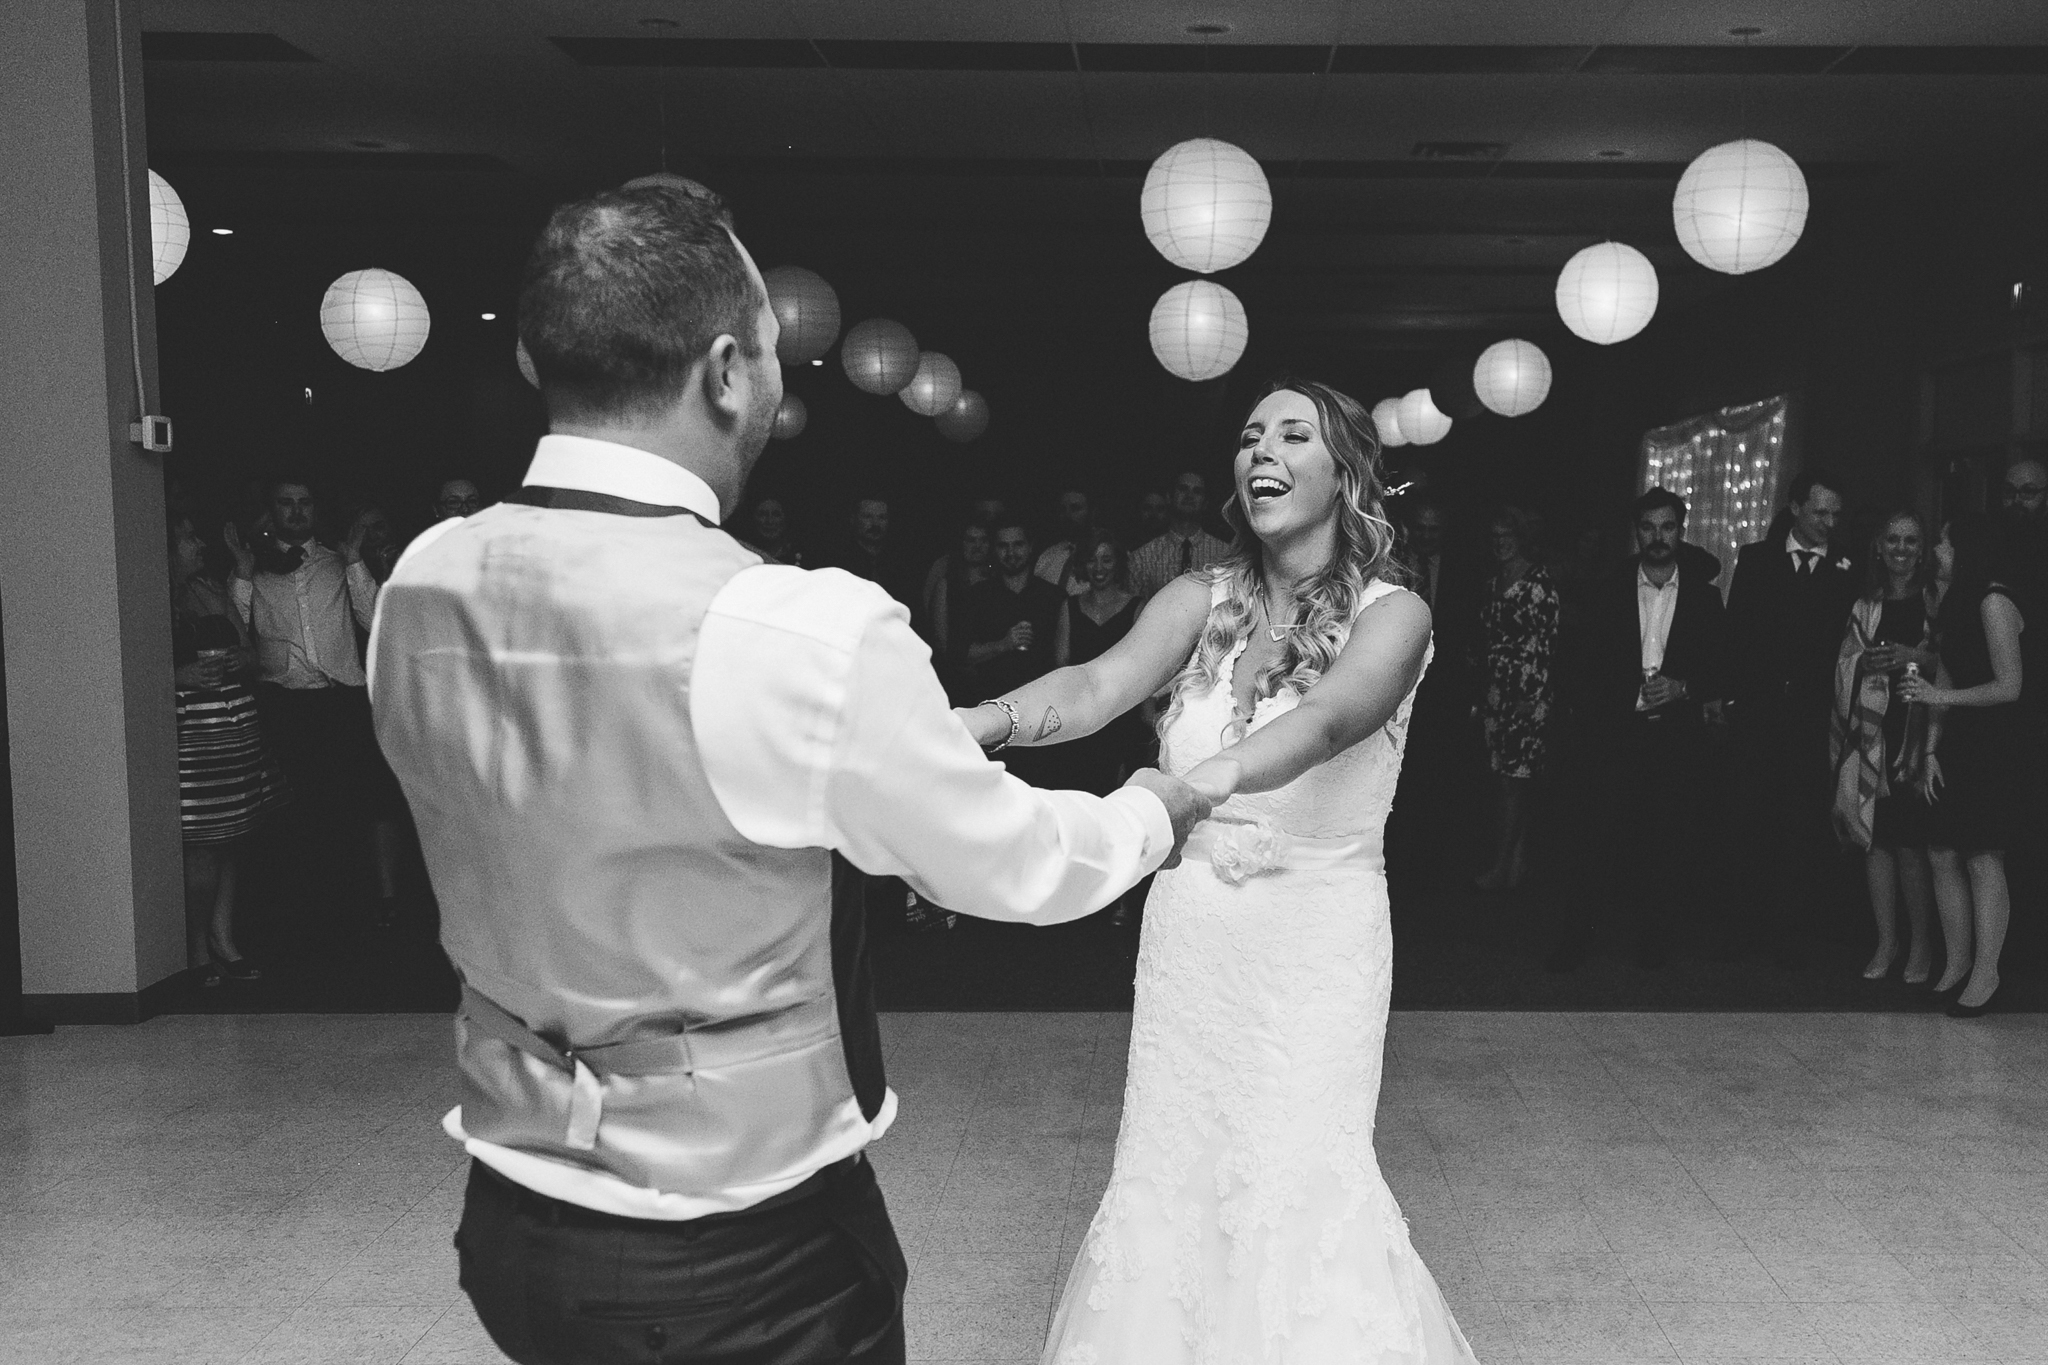 lethbridge-photographer-love-and-be-loved-photography-rocky-mountain-turf-club-reception-katie-kelli-wedding-picture-image-photo-428.jpg